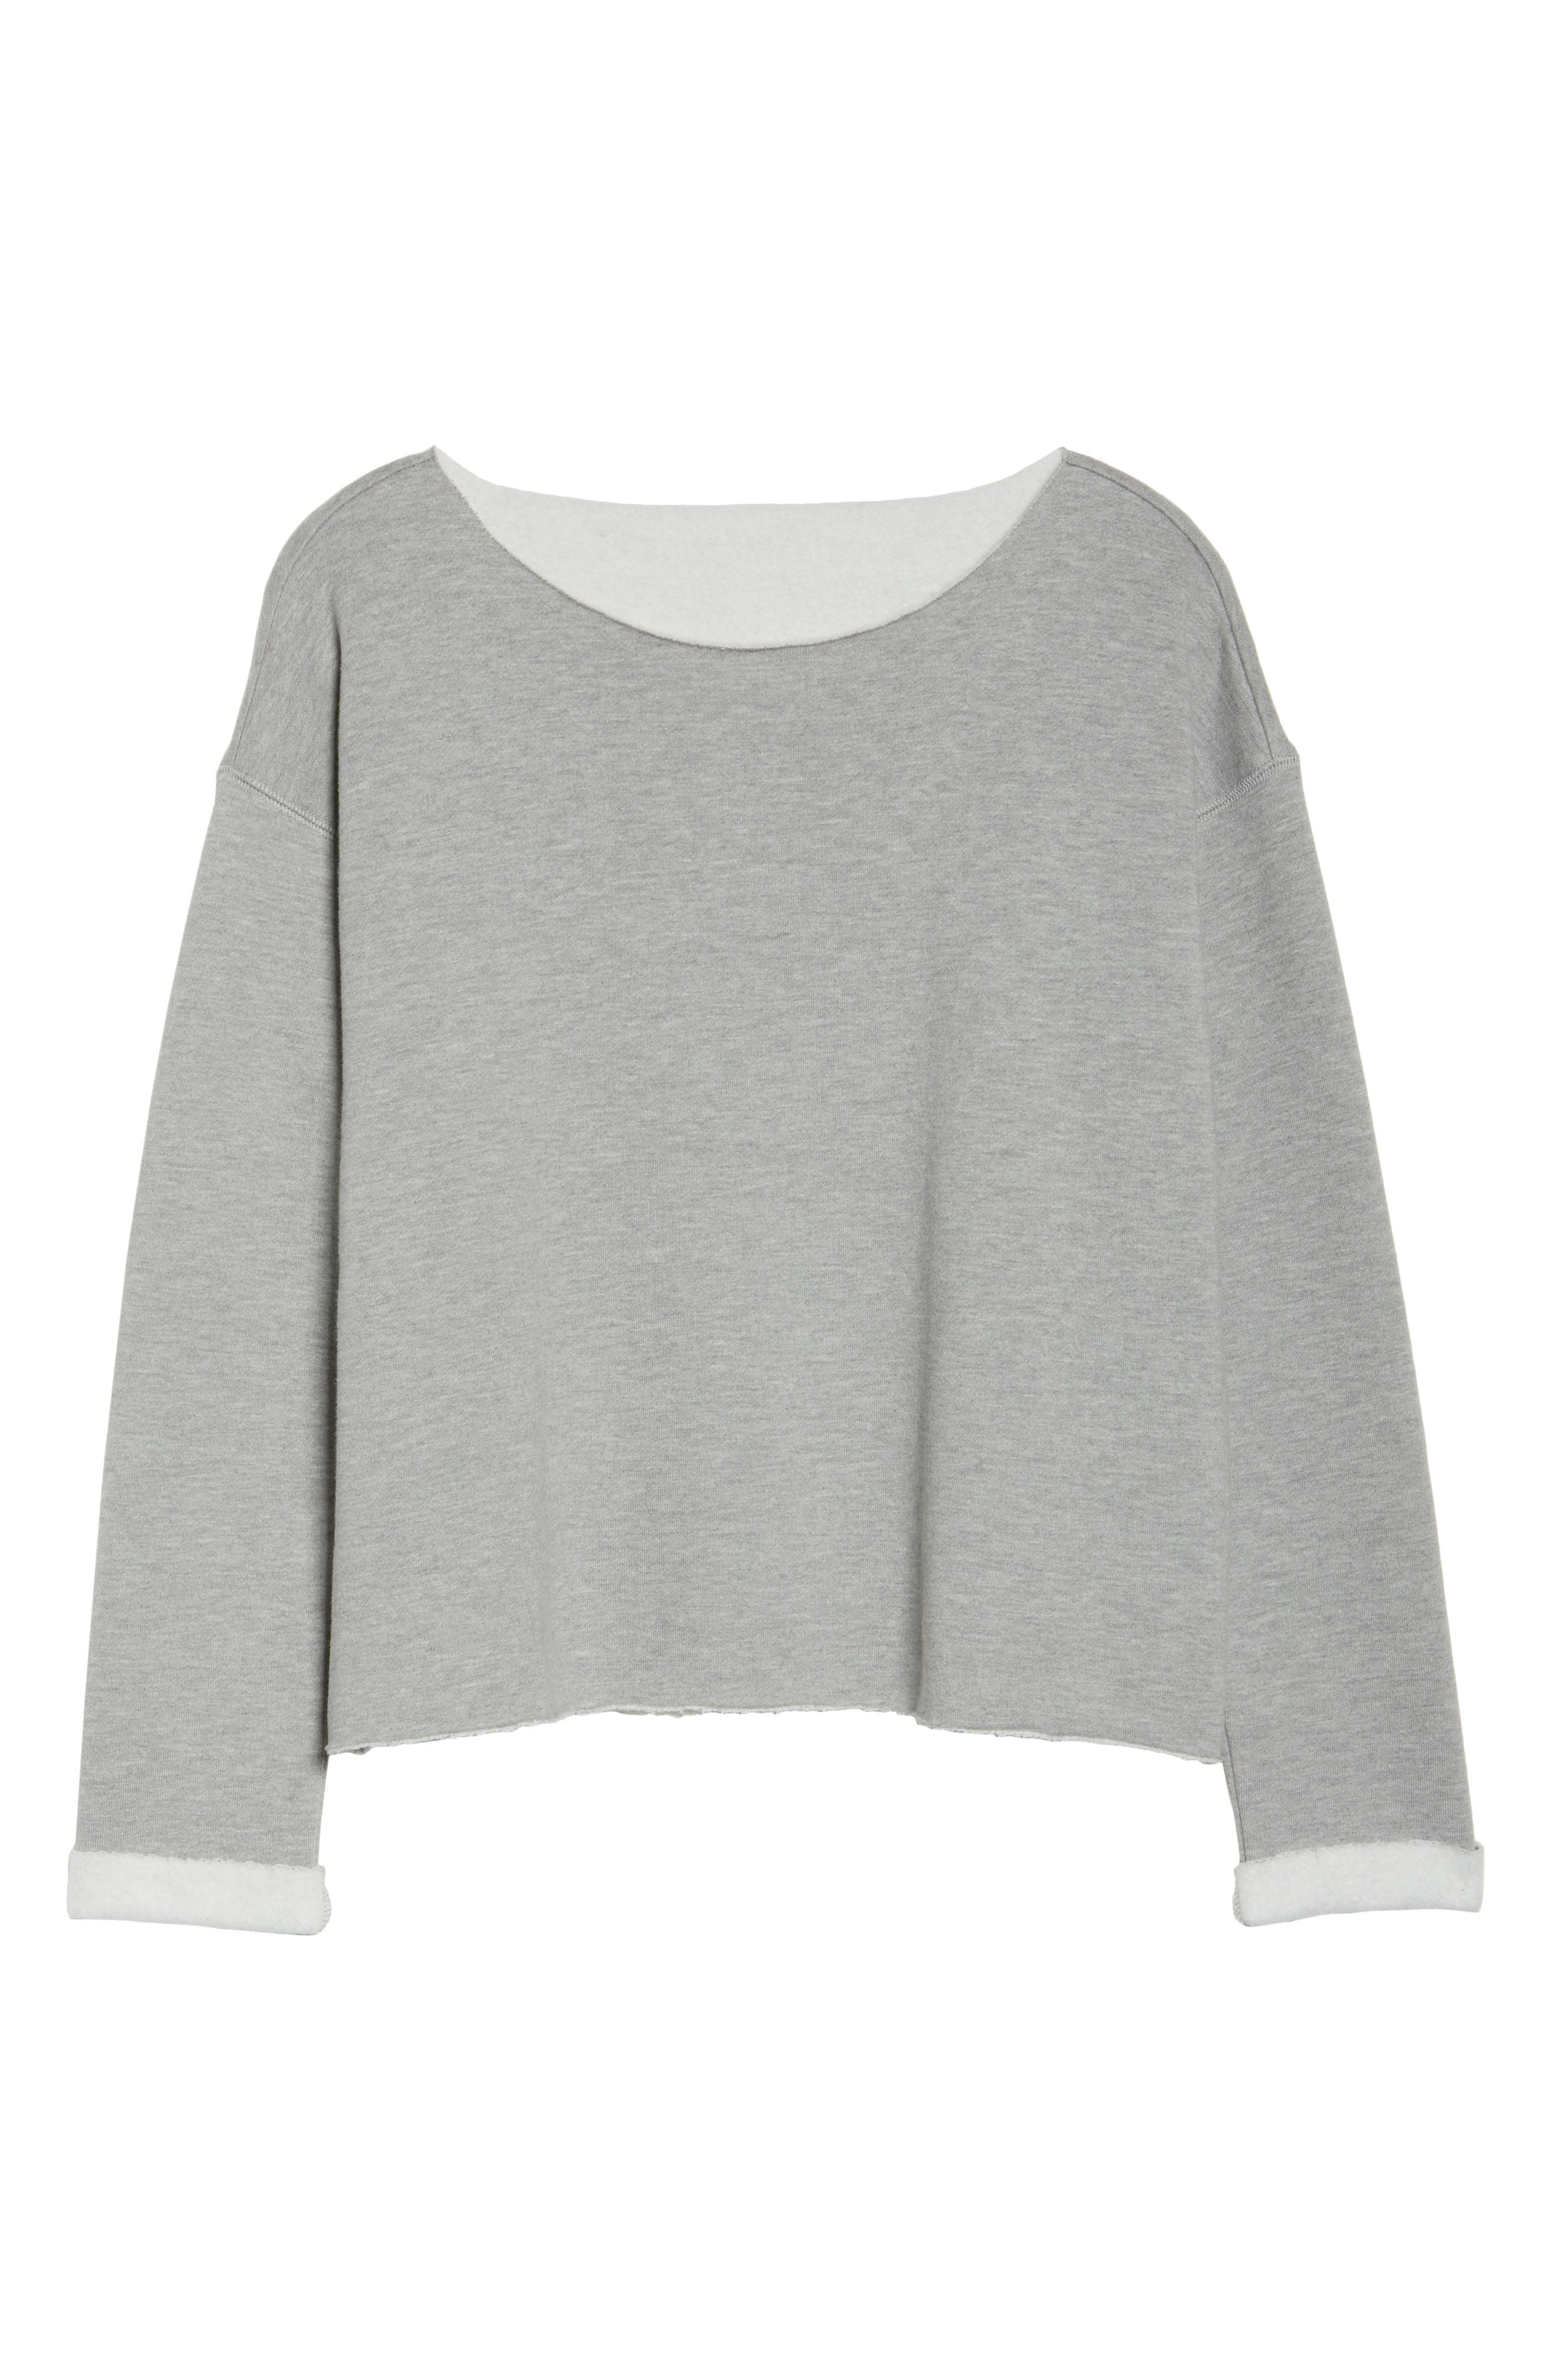 Raw Edge Pullover,                             Alternate thumbnail 4, color,                             Heather Grey